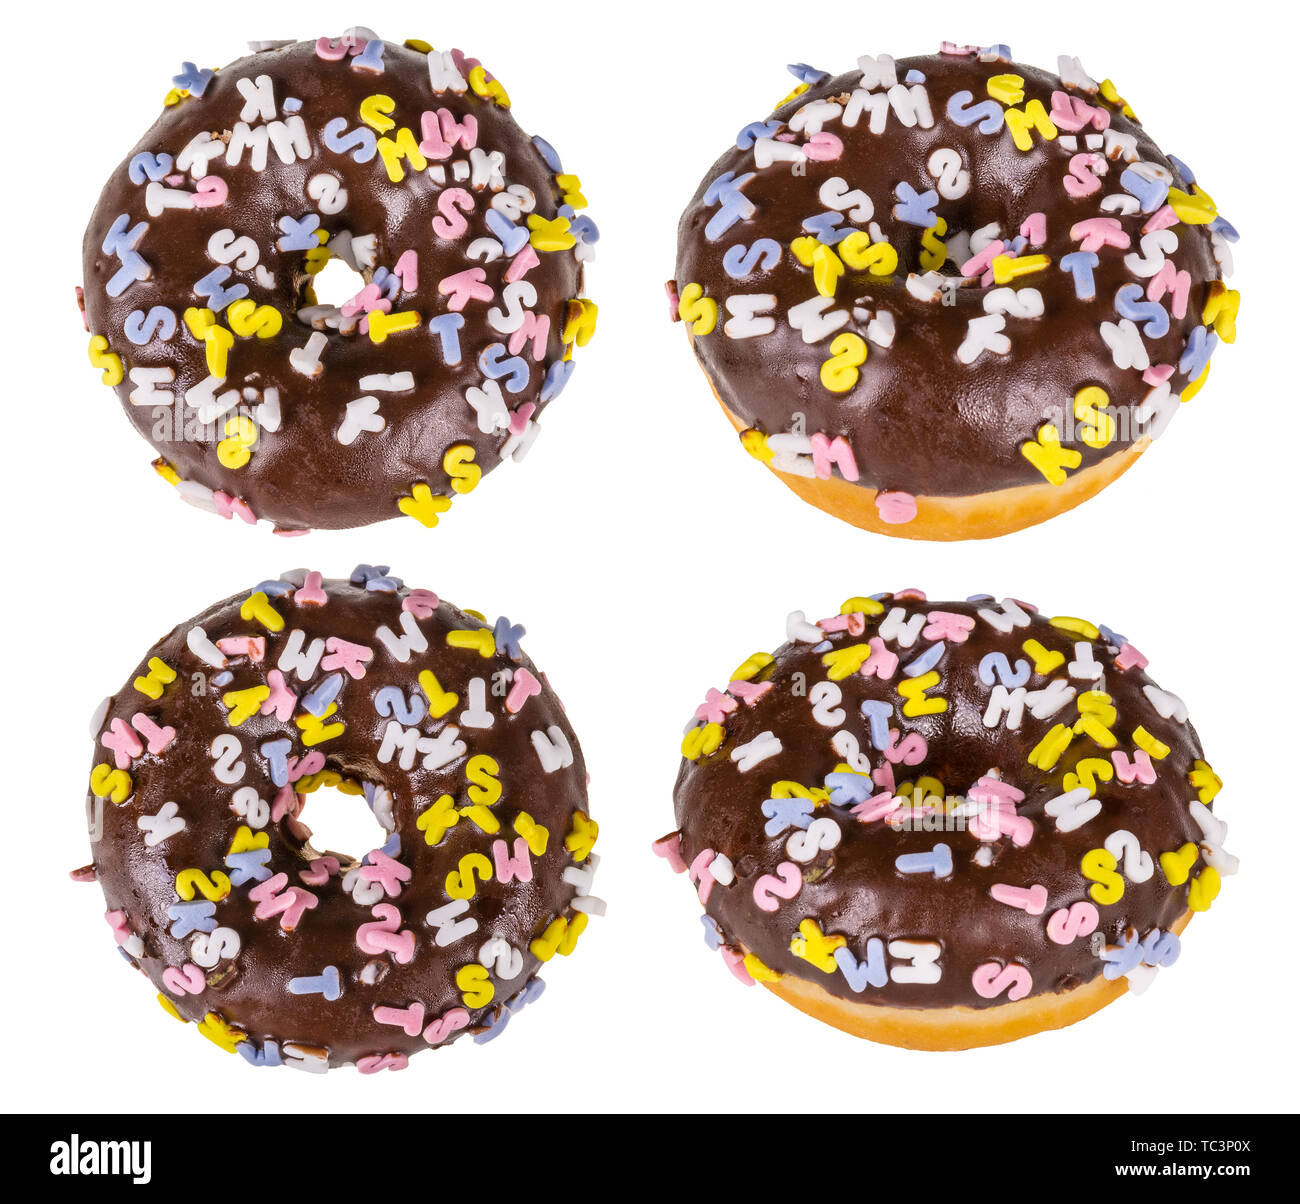 Four sweet baked donuts sprinkled with colorful capital letters. Isolated on white background. Round fried fat doughnuts. Chocolate topping. Junk food. - Stock Image